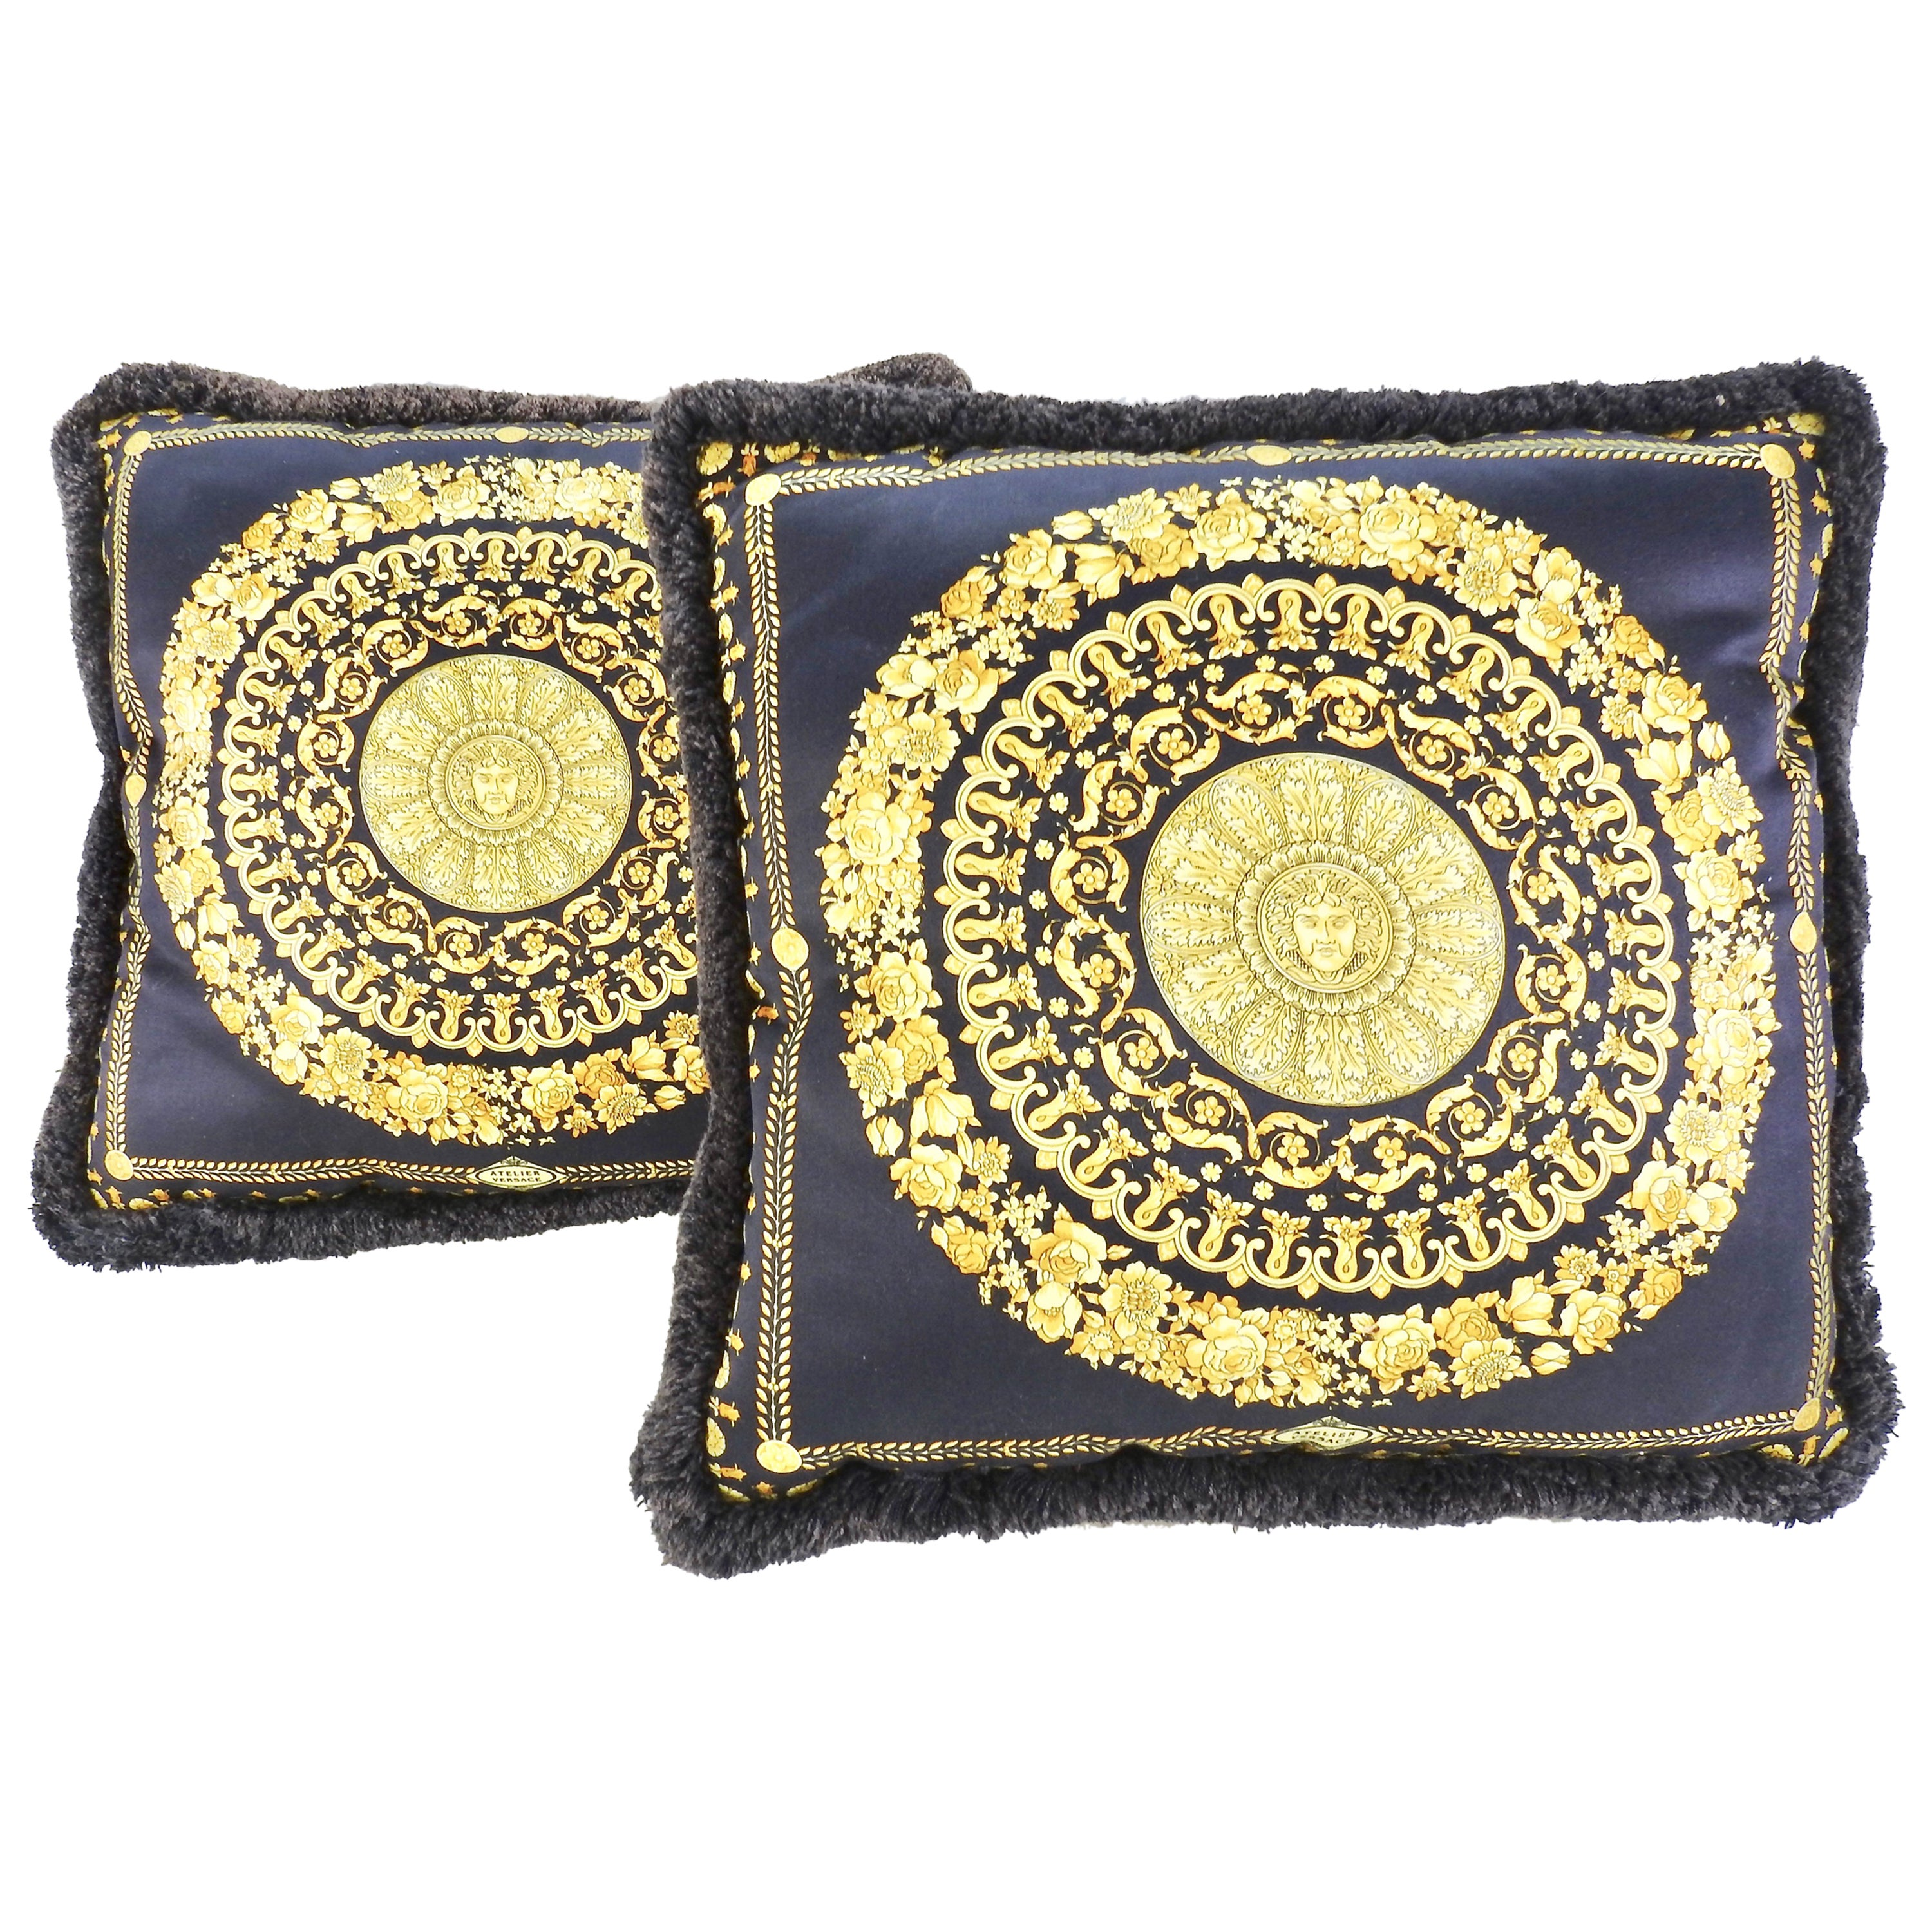 e0004a7f64 Pair of Vintage Versace Medusa Royale Throw Pillows at 1stdibs